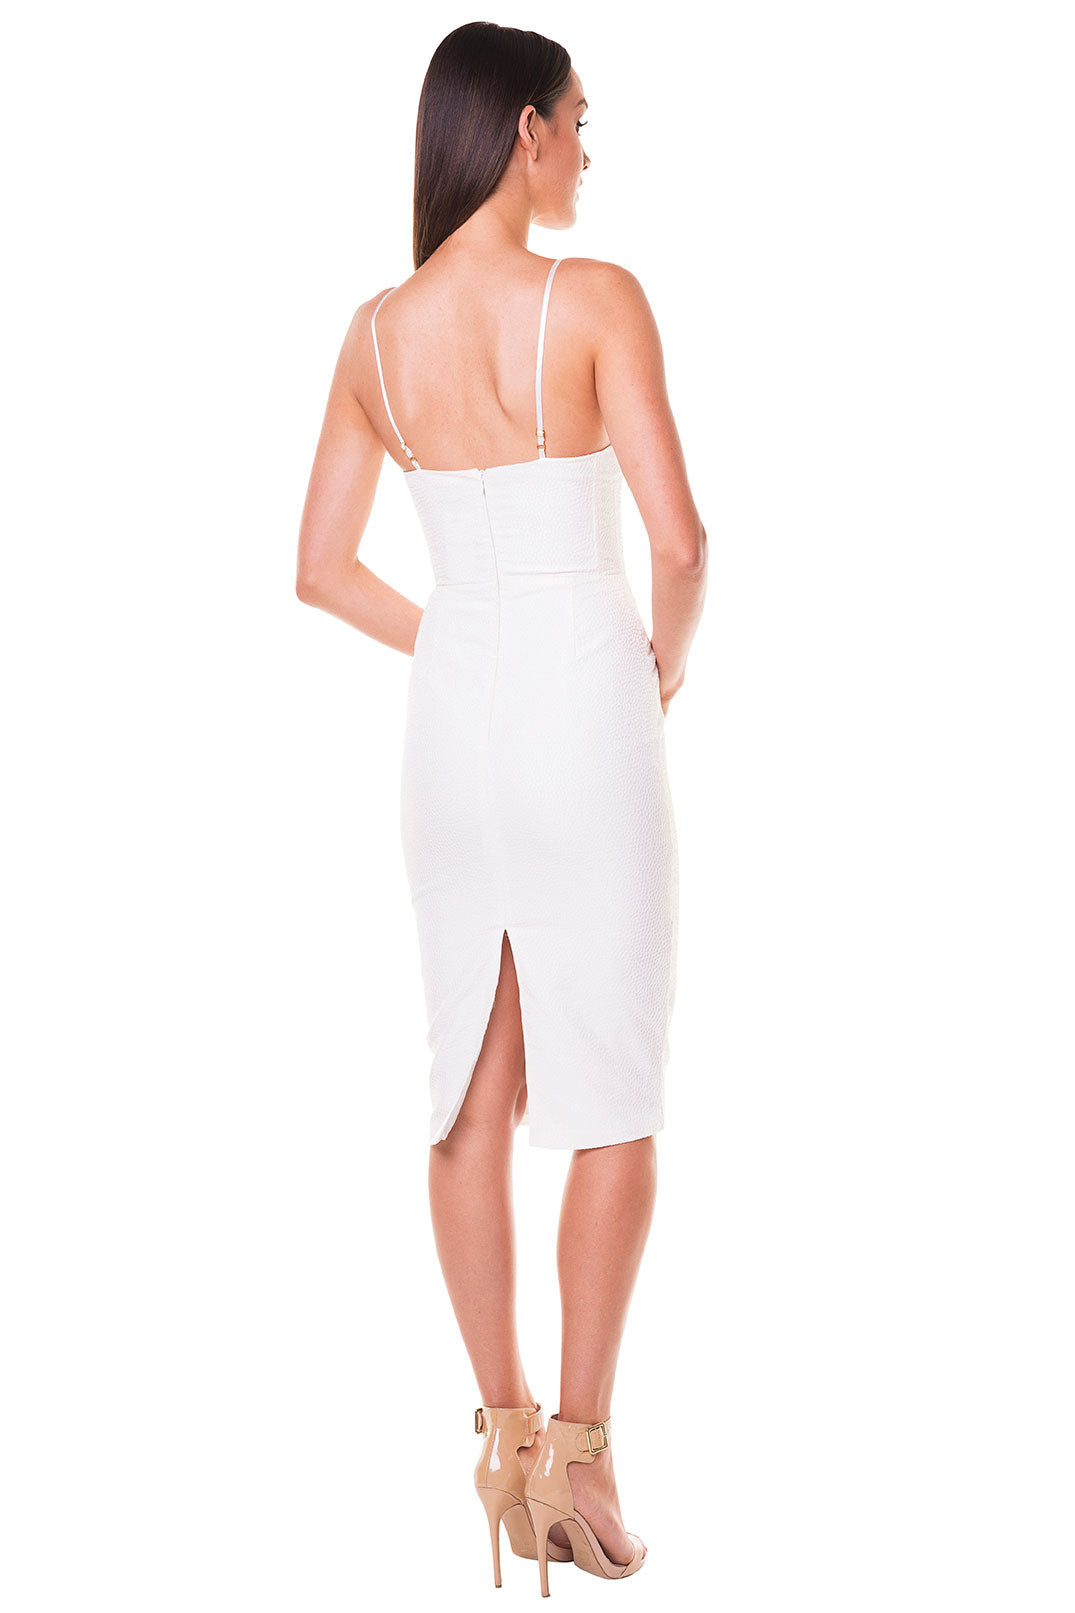 Caterina Bustier Dress - White [SAMPLE SALE]